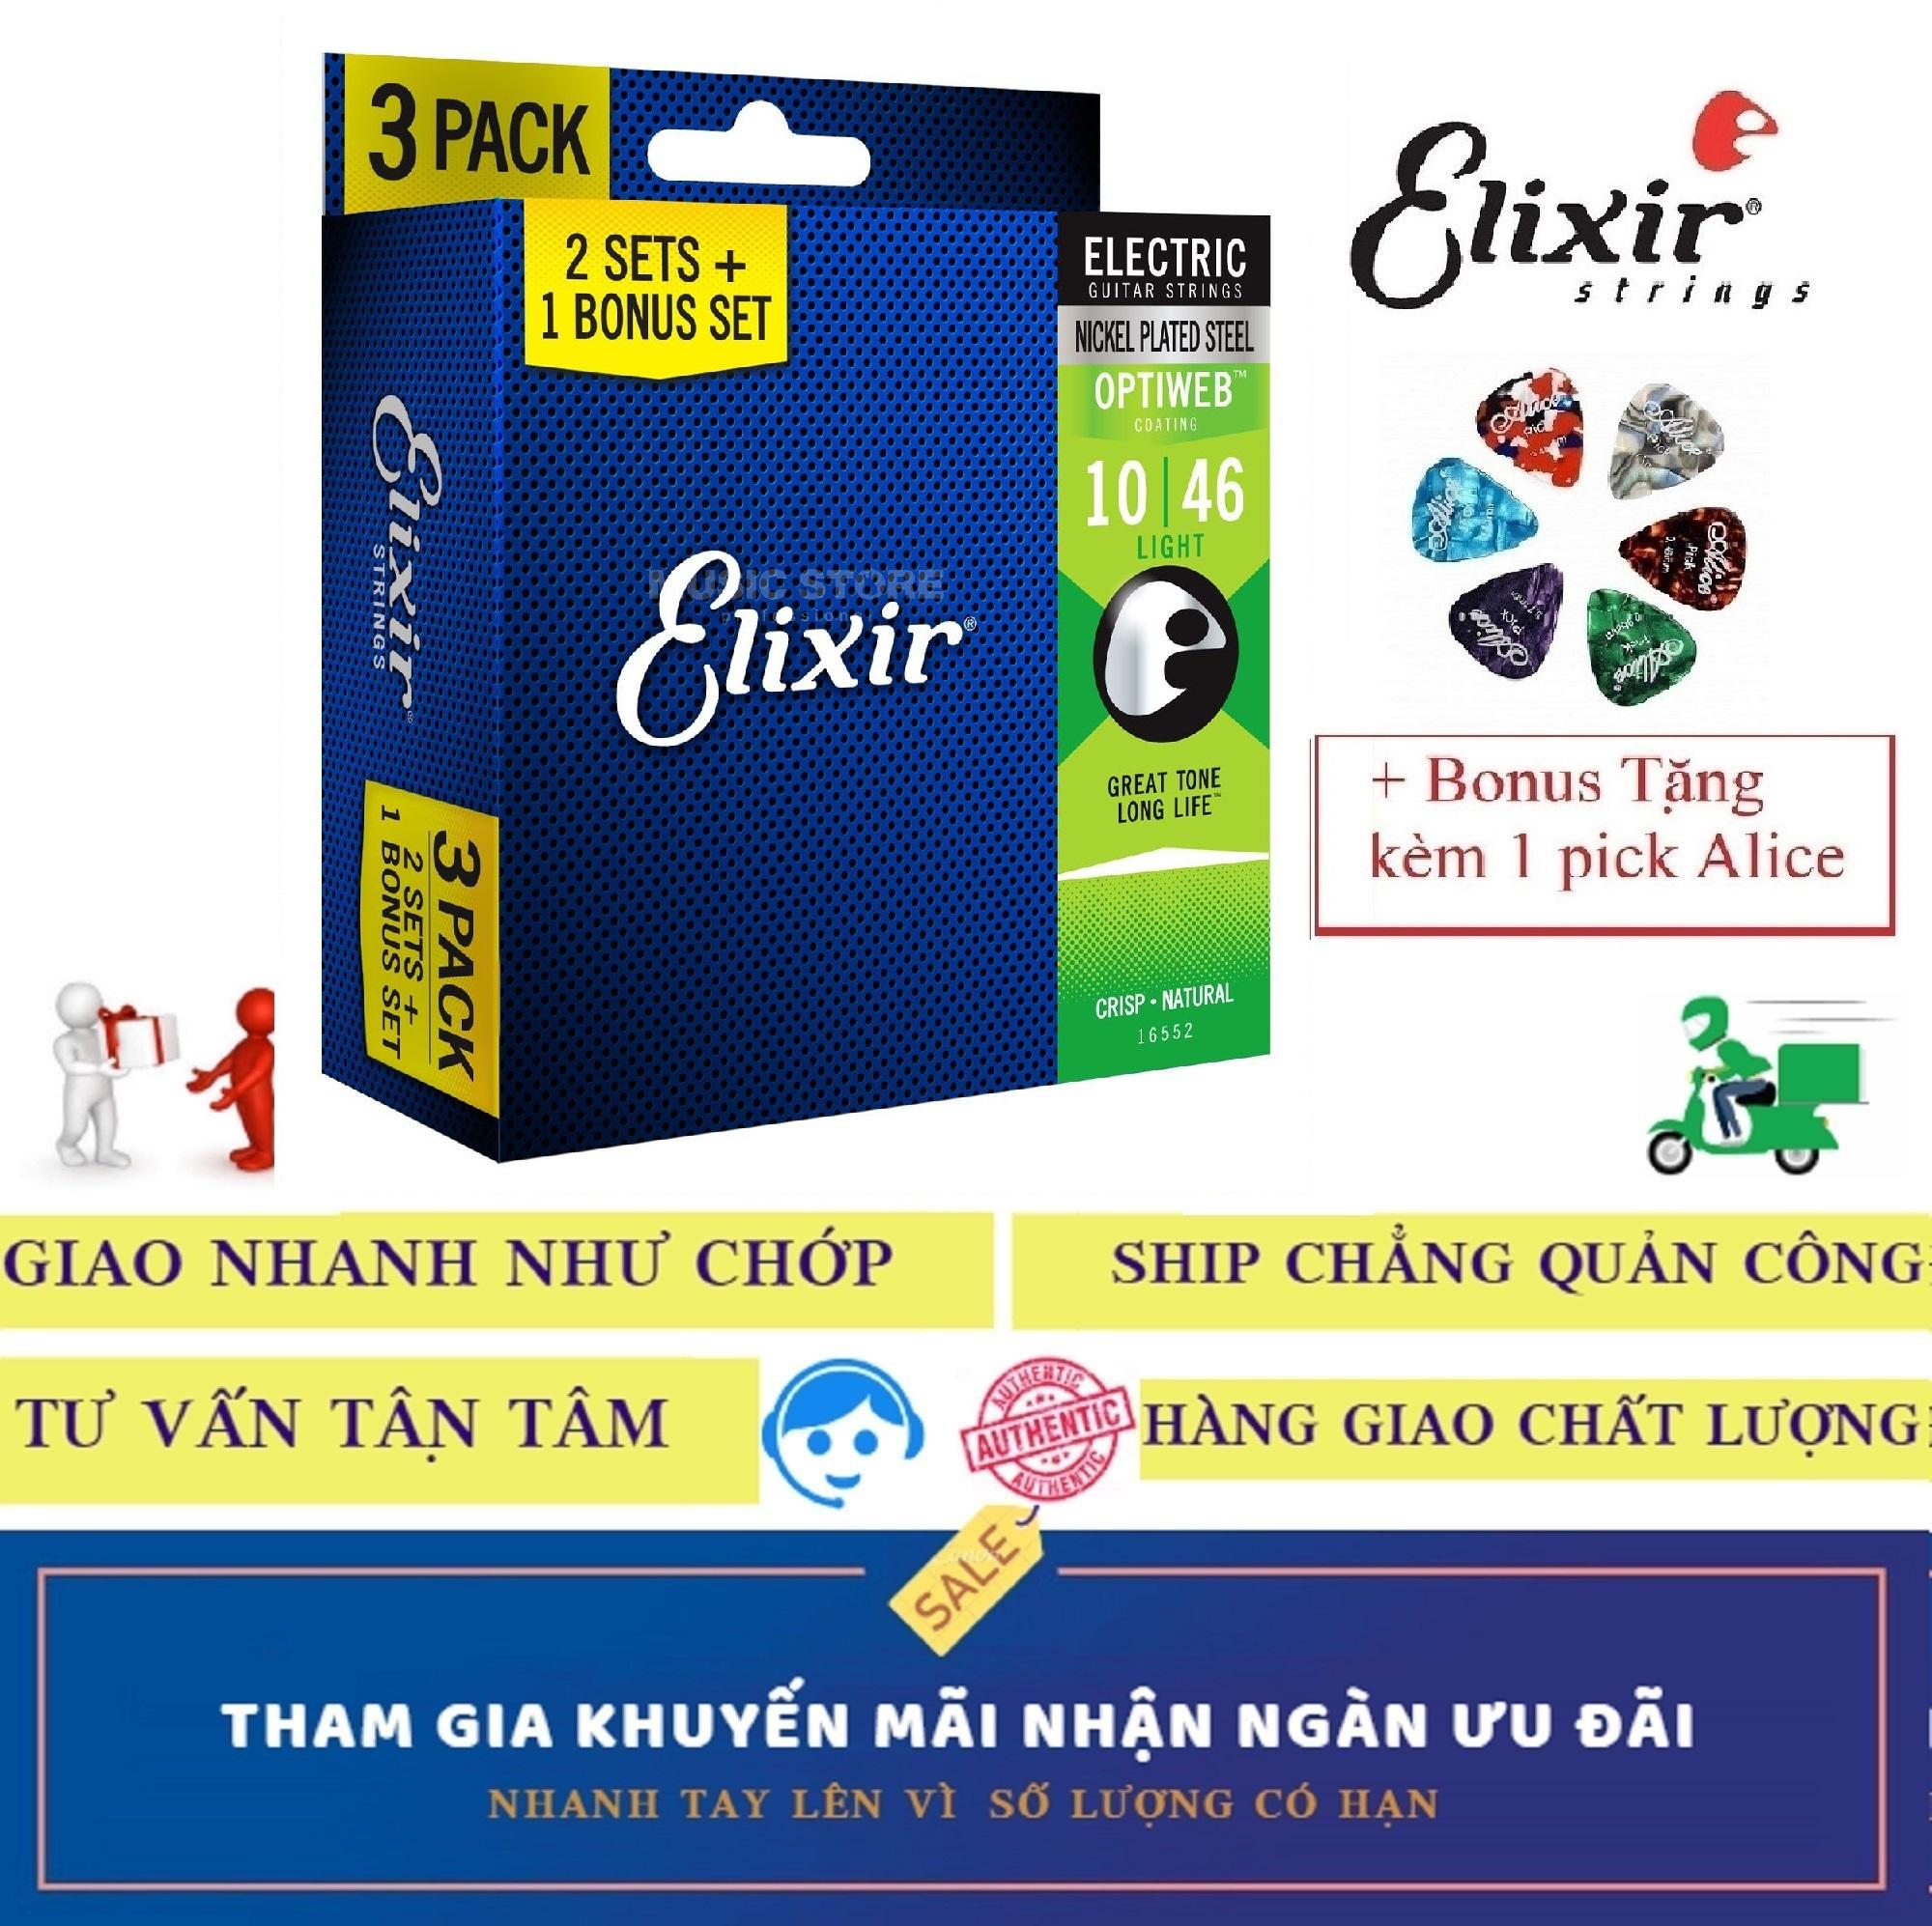 Combo Pack 3 Bộ Dây Đàn Elixir cao cấp 16552 (Cỡ 10) Electric Guitar điện Nickel Plated Steel With OPTIWEB COATING Strings